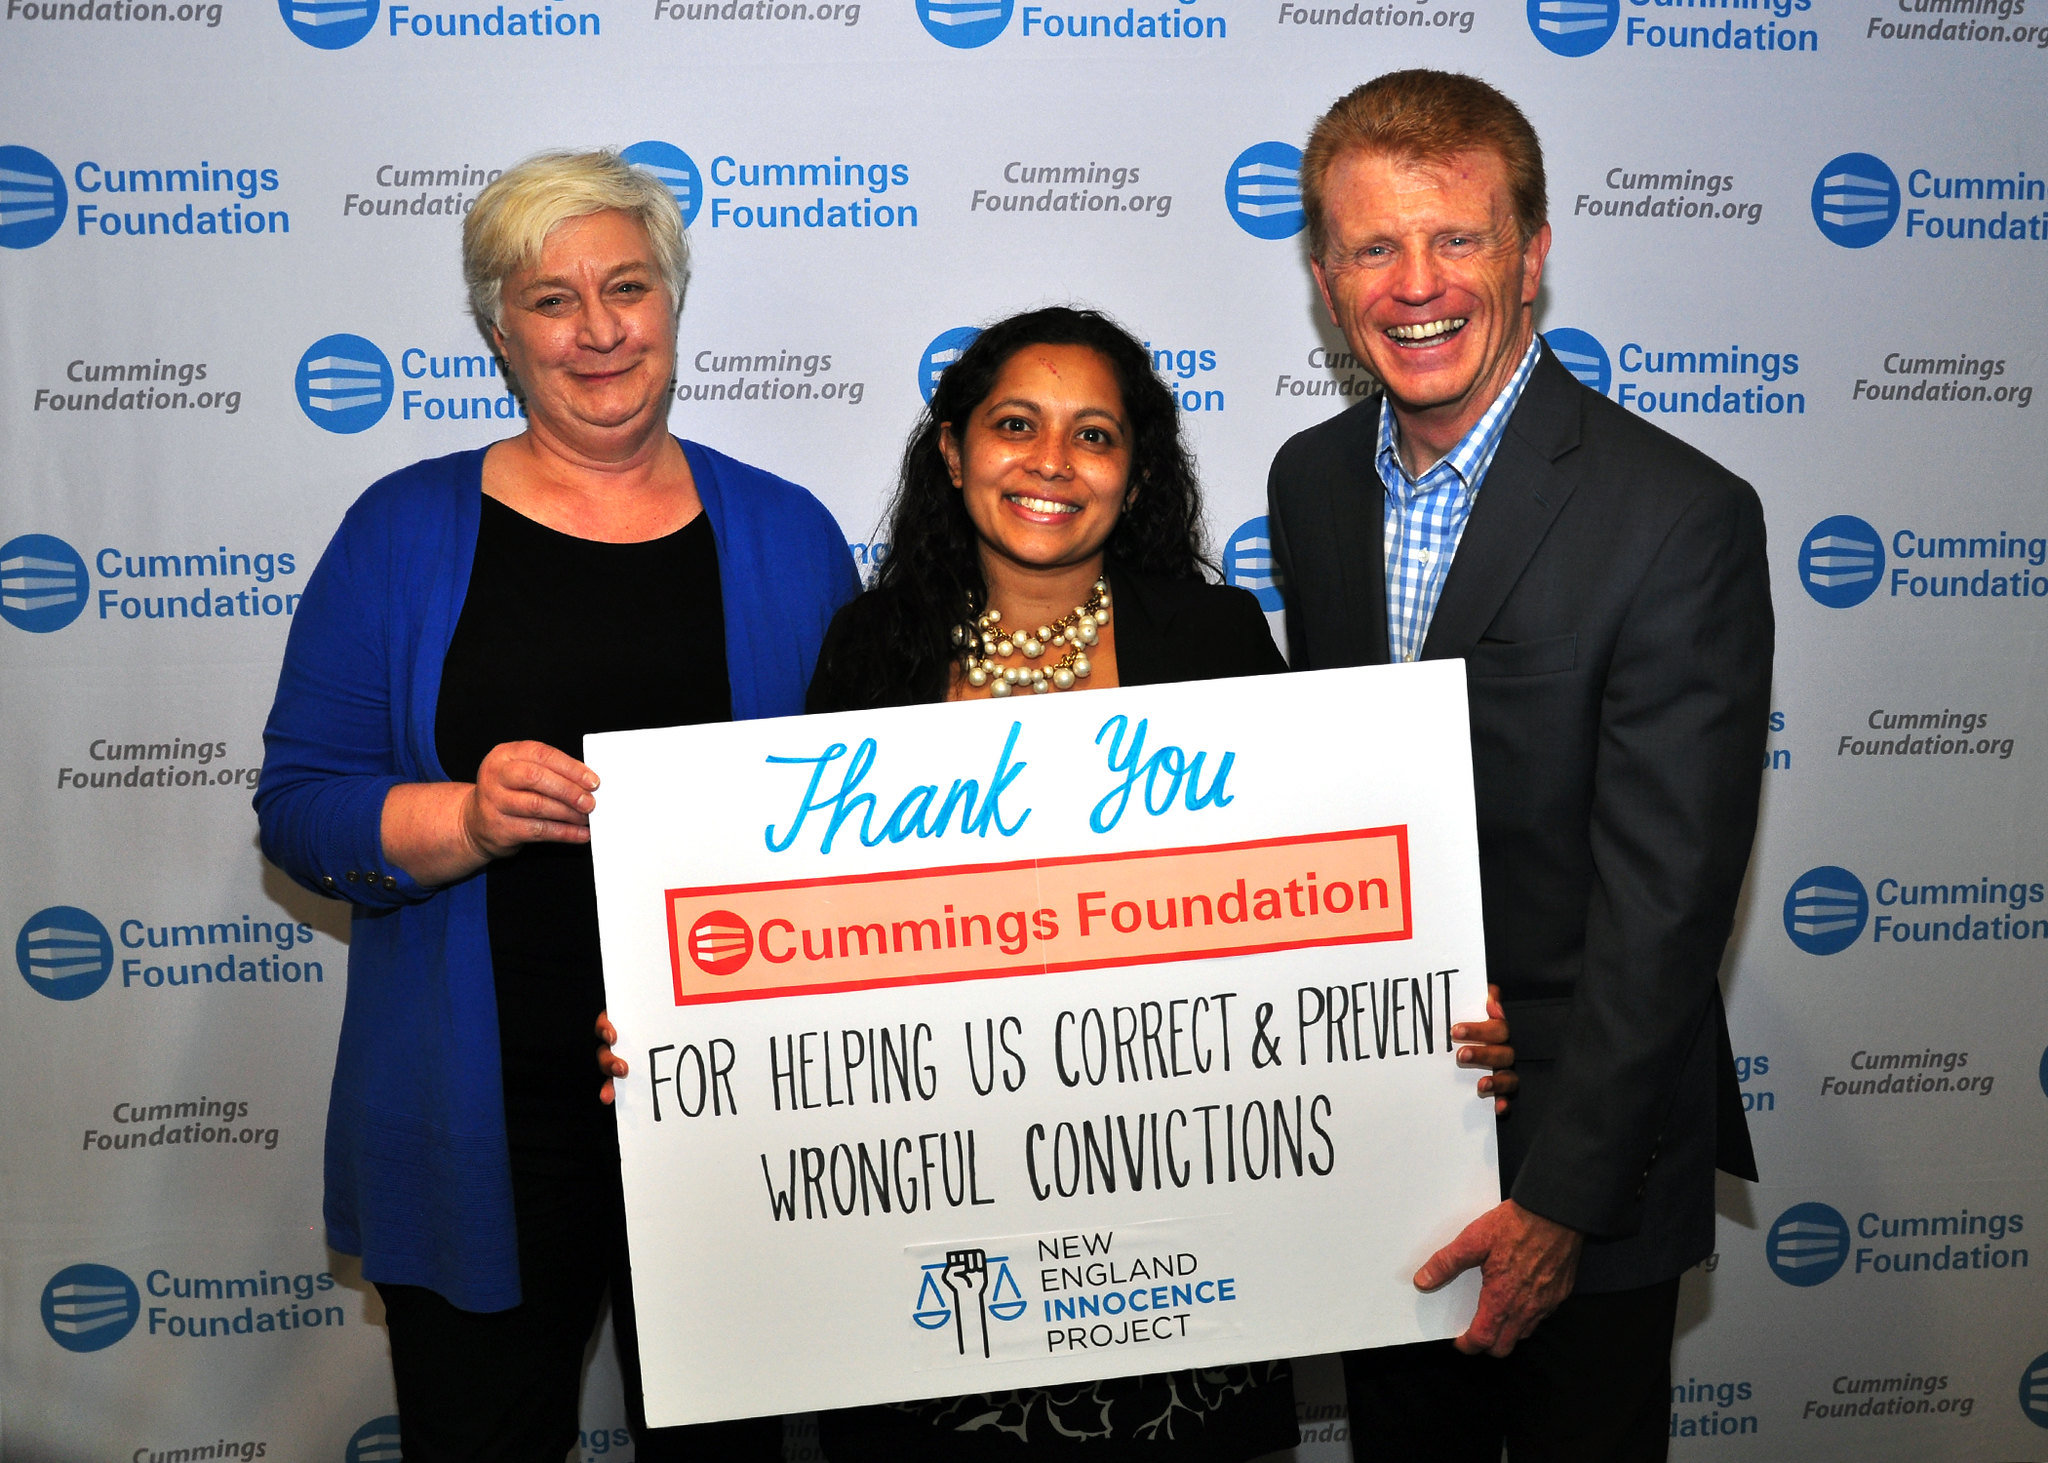 New England Innocence Project Executive Director, Radha Natarajan (middle) and Treasurer, Cheryl Schaffer (left) pose at the photo booth with Cummings Foundation Trustee, Paul Casey at the reception for grant recipients in Woburn.